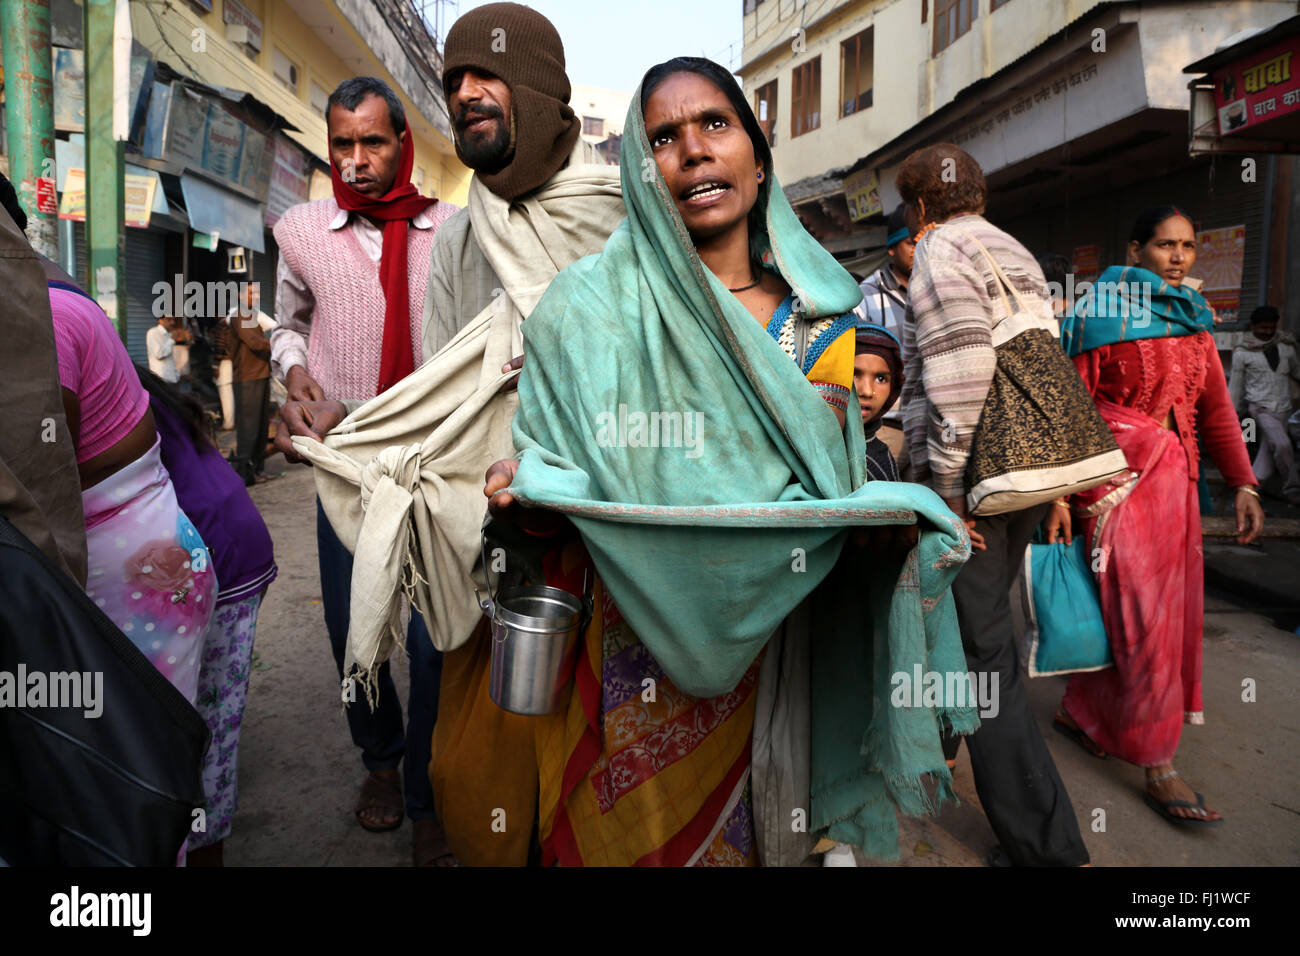 Indian woman begging beggar in the street in Varanasi, India - Stock Image